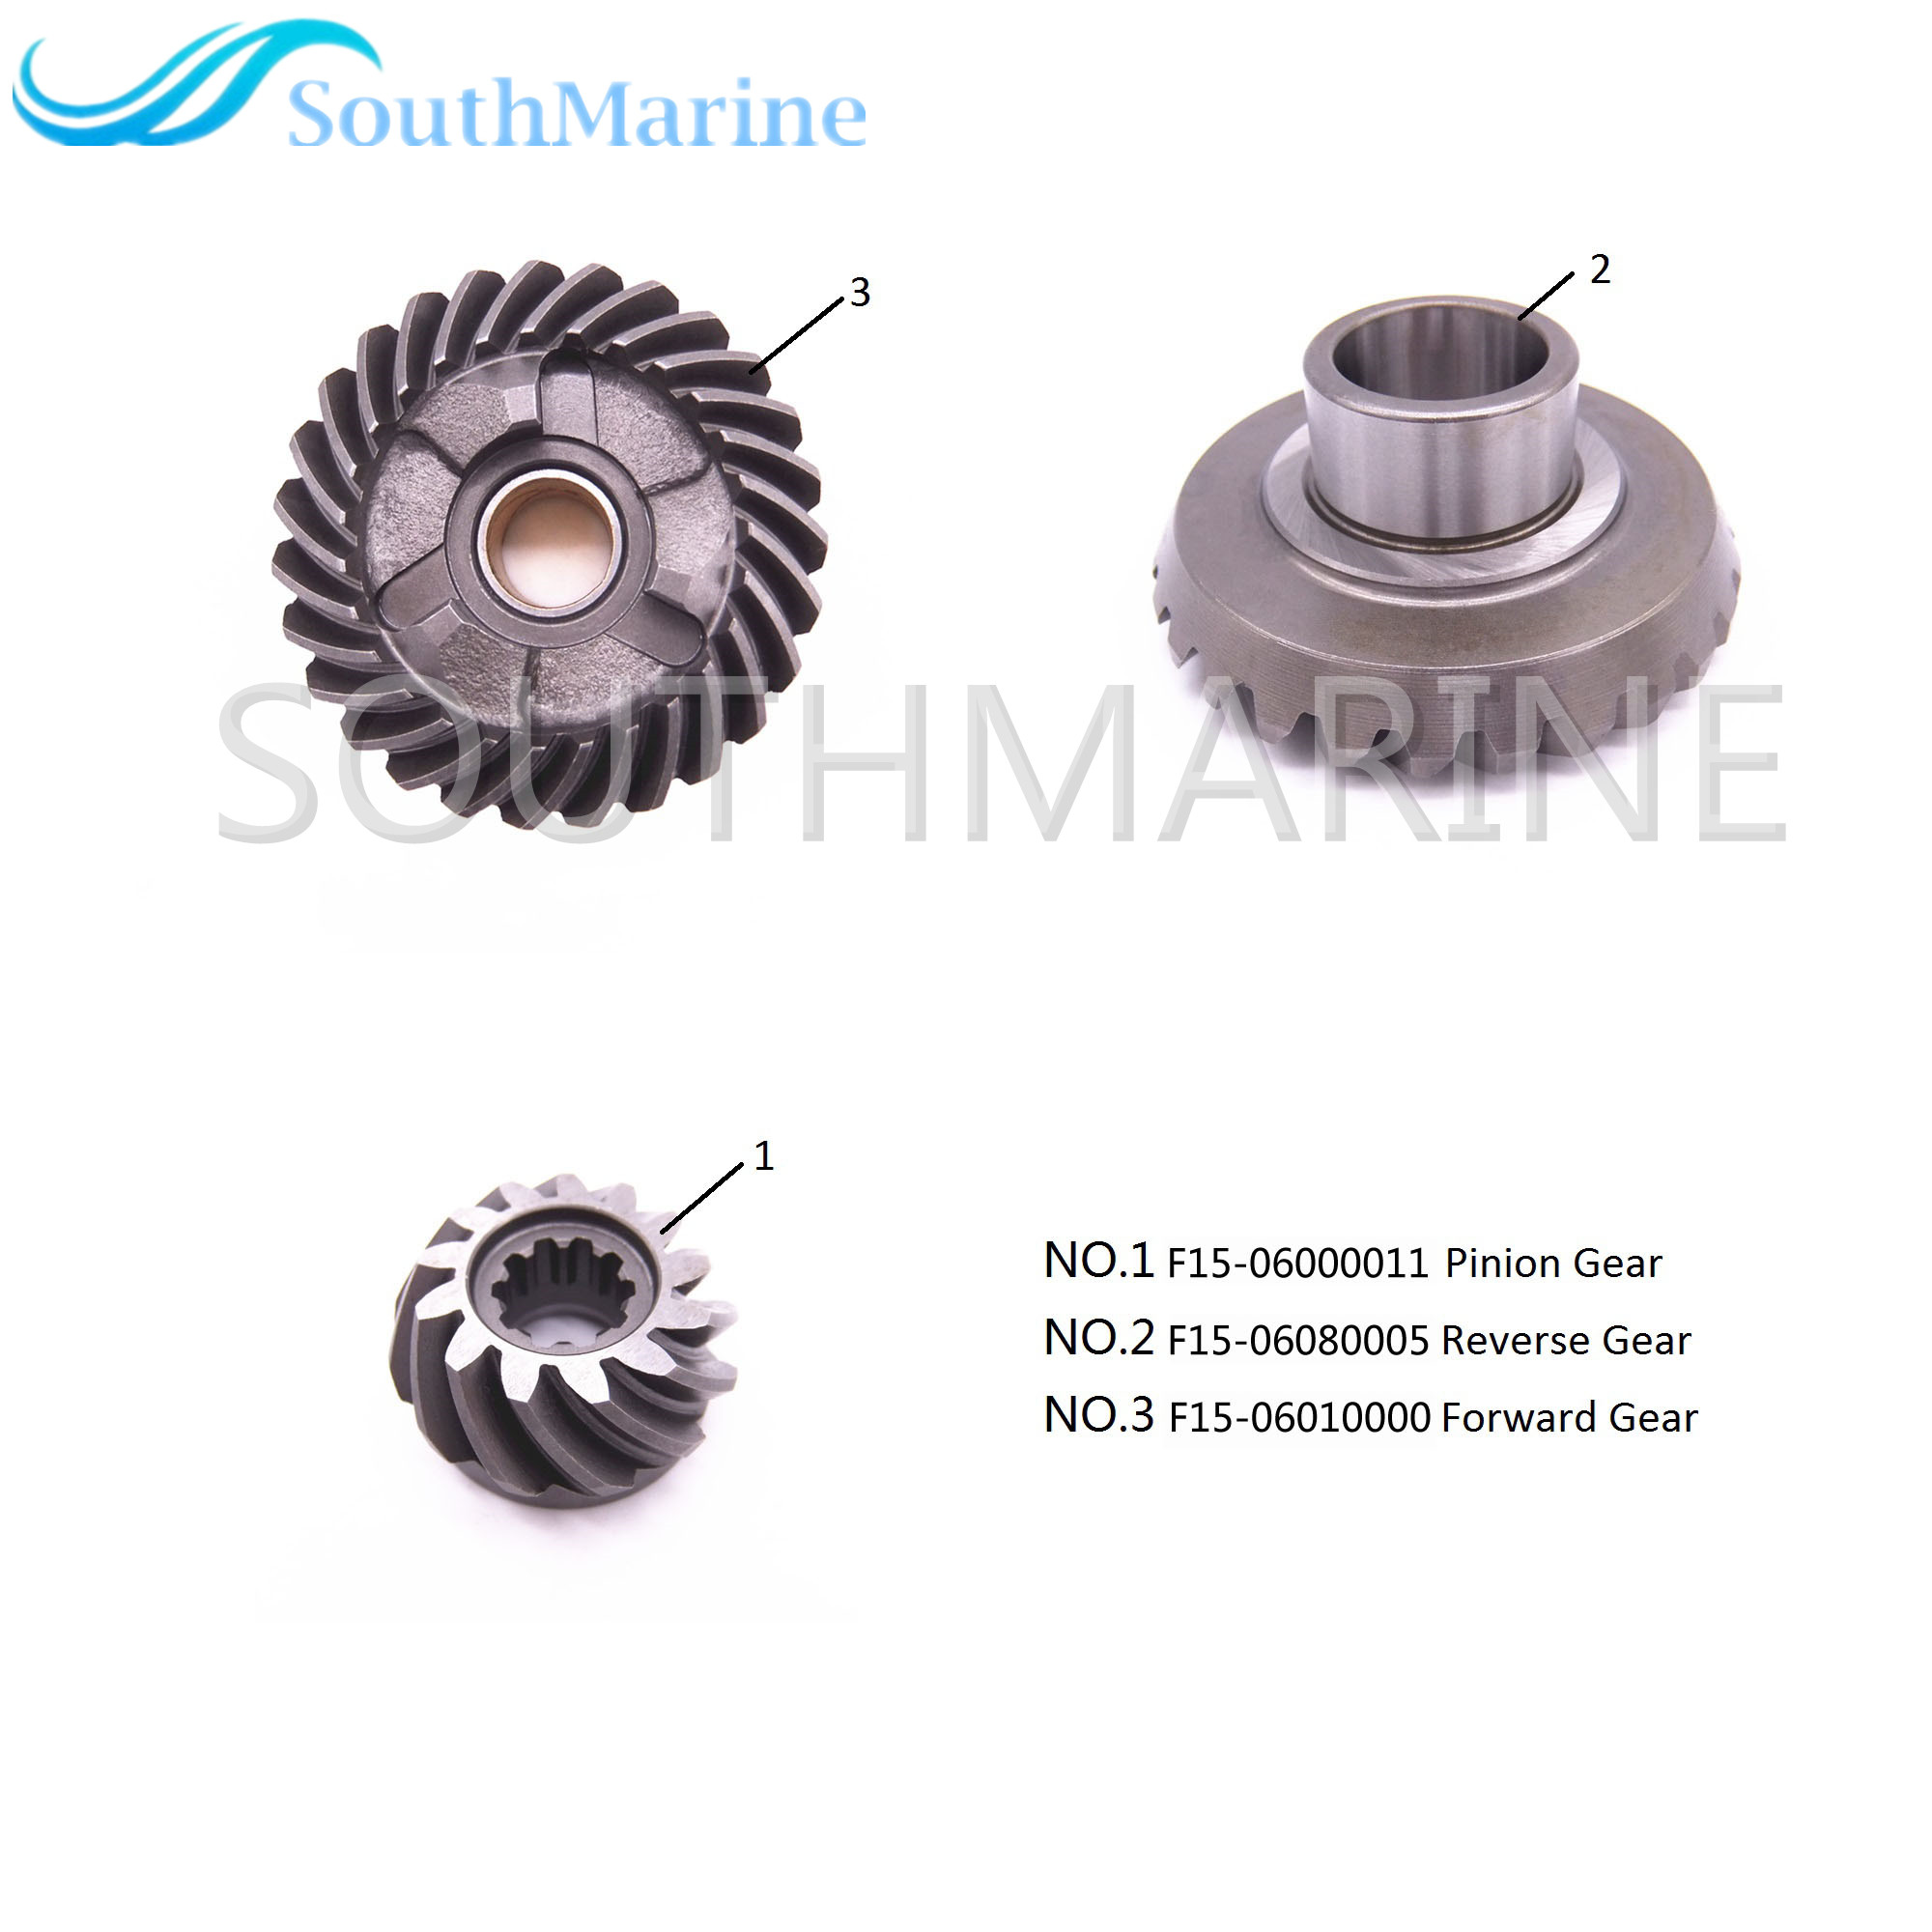 Gears and Pinion Set Kit for Parsun HDX Makara T9 9 T15 BM 2 Stroke Outboard